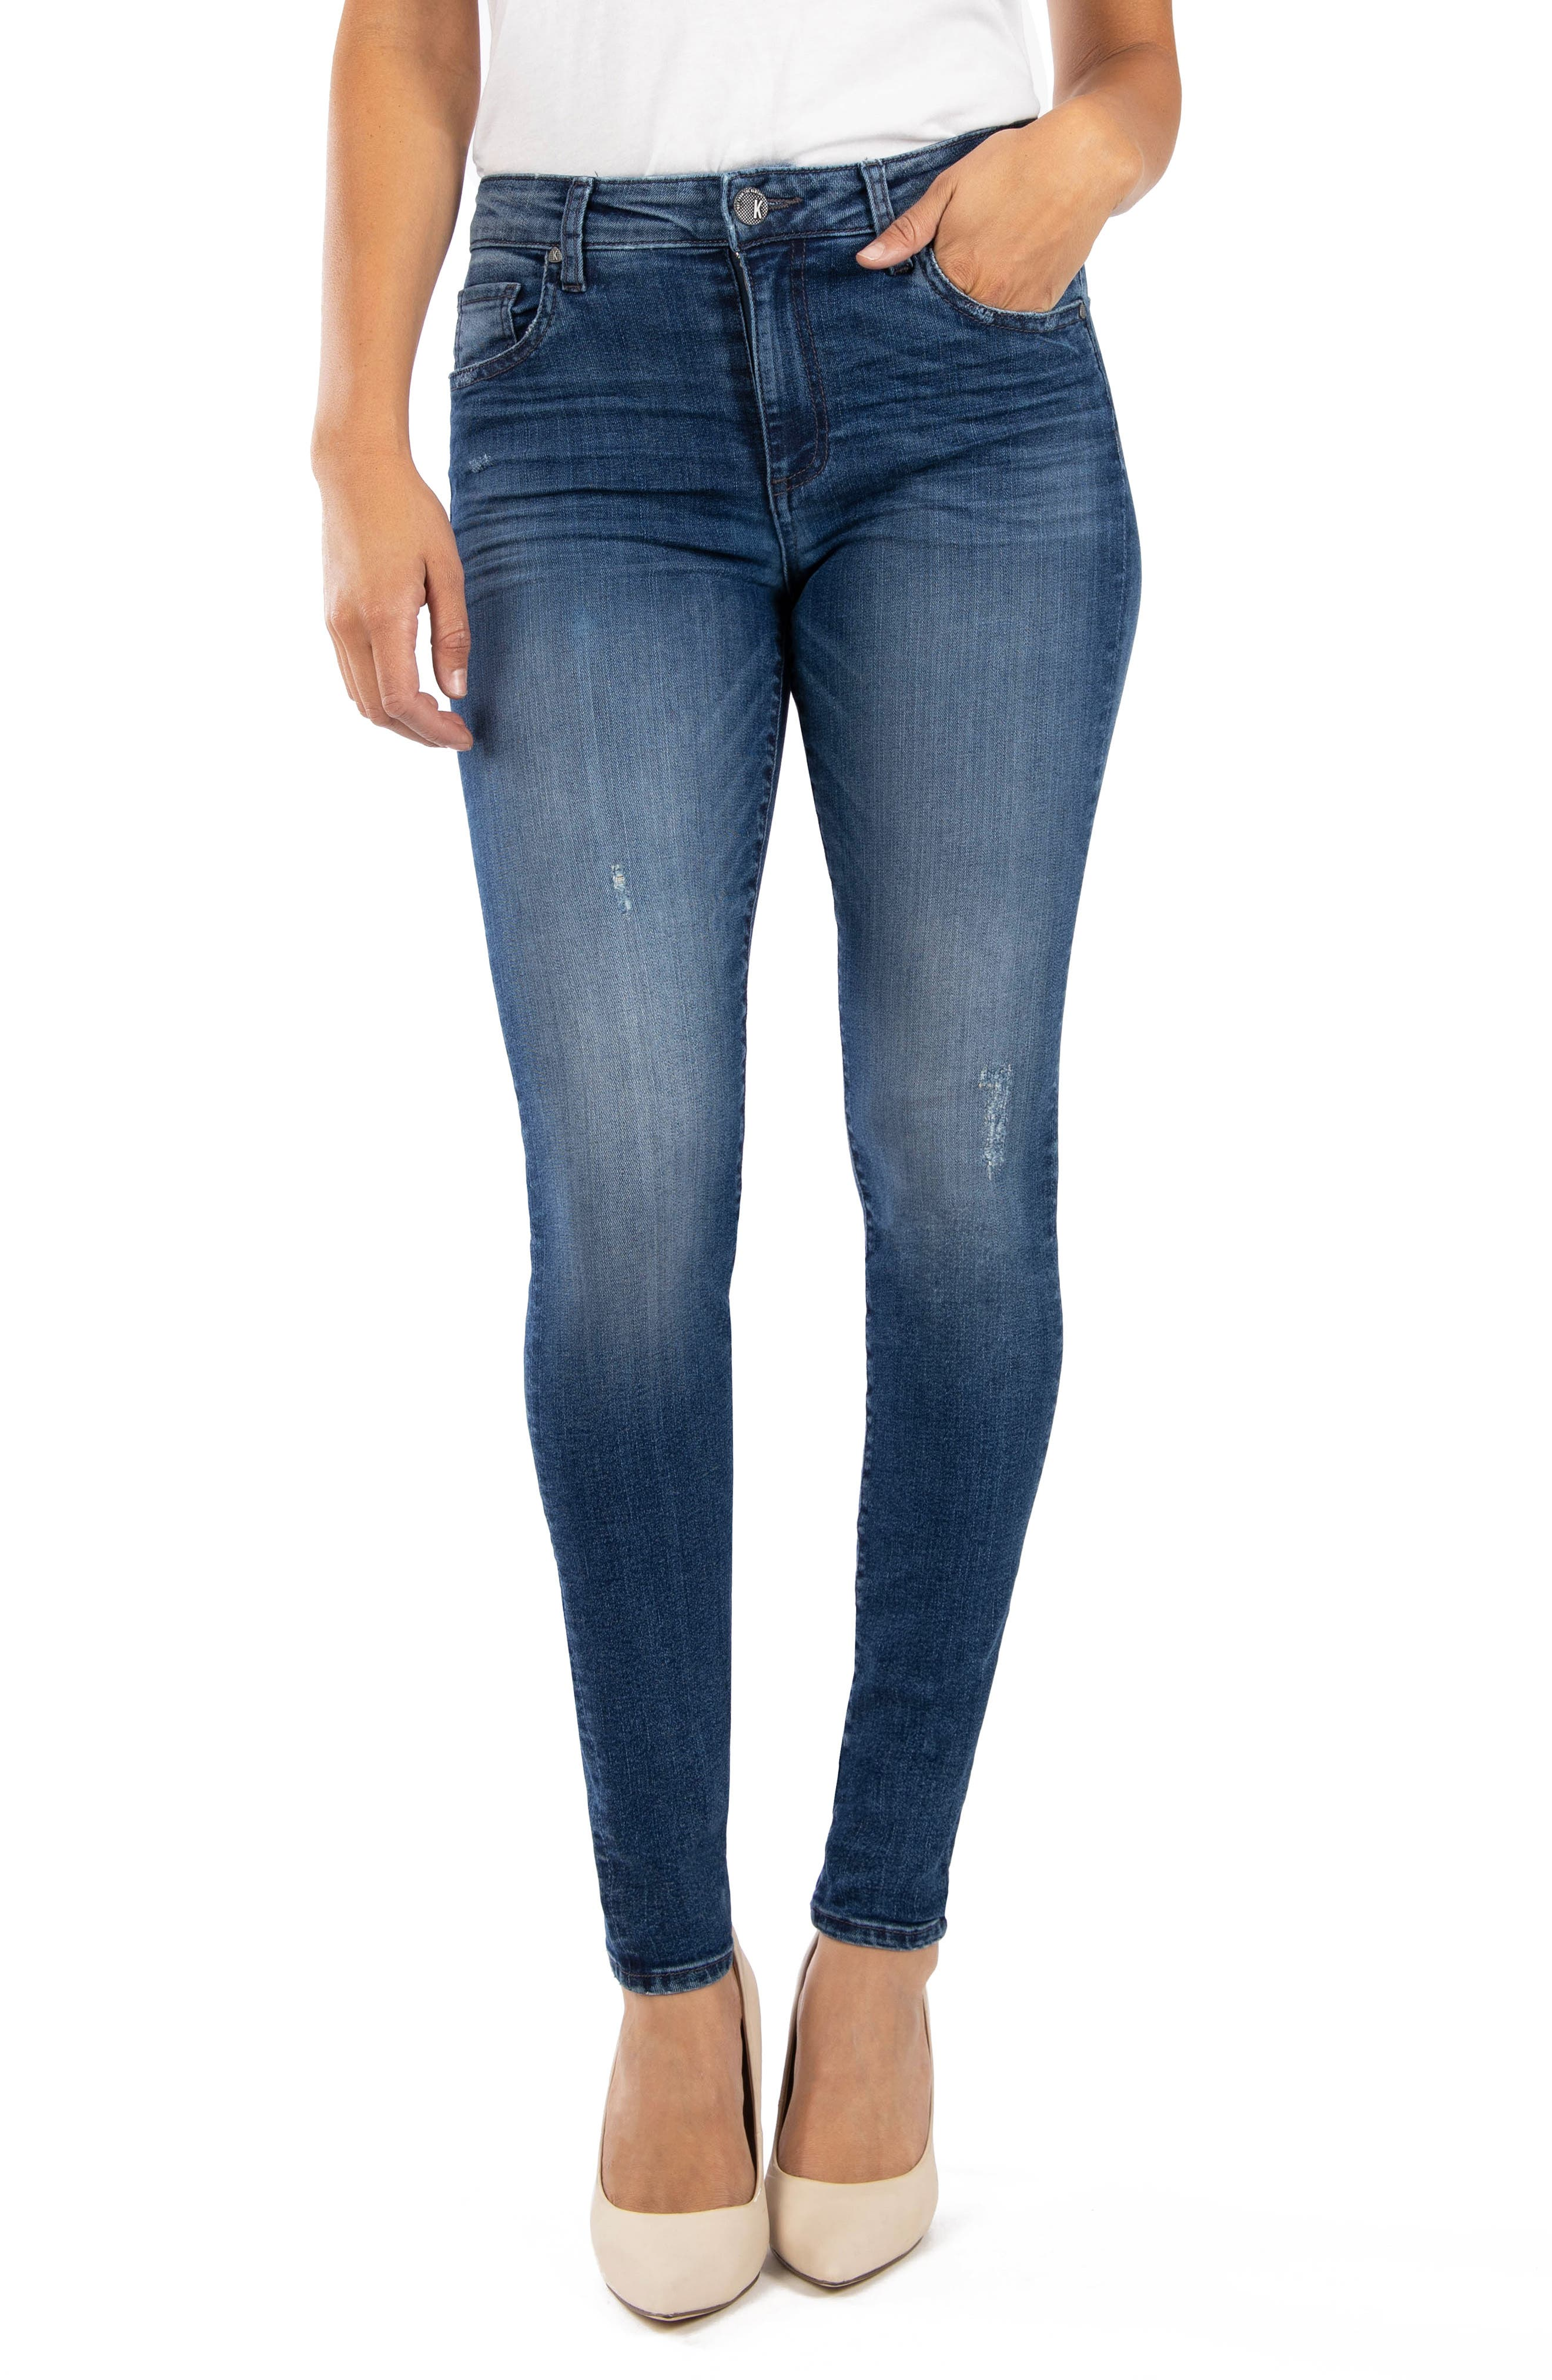 KUT from the Kloth Donna High Waist Ankle Skinny Jeans (Allowed Alwdm)